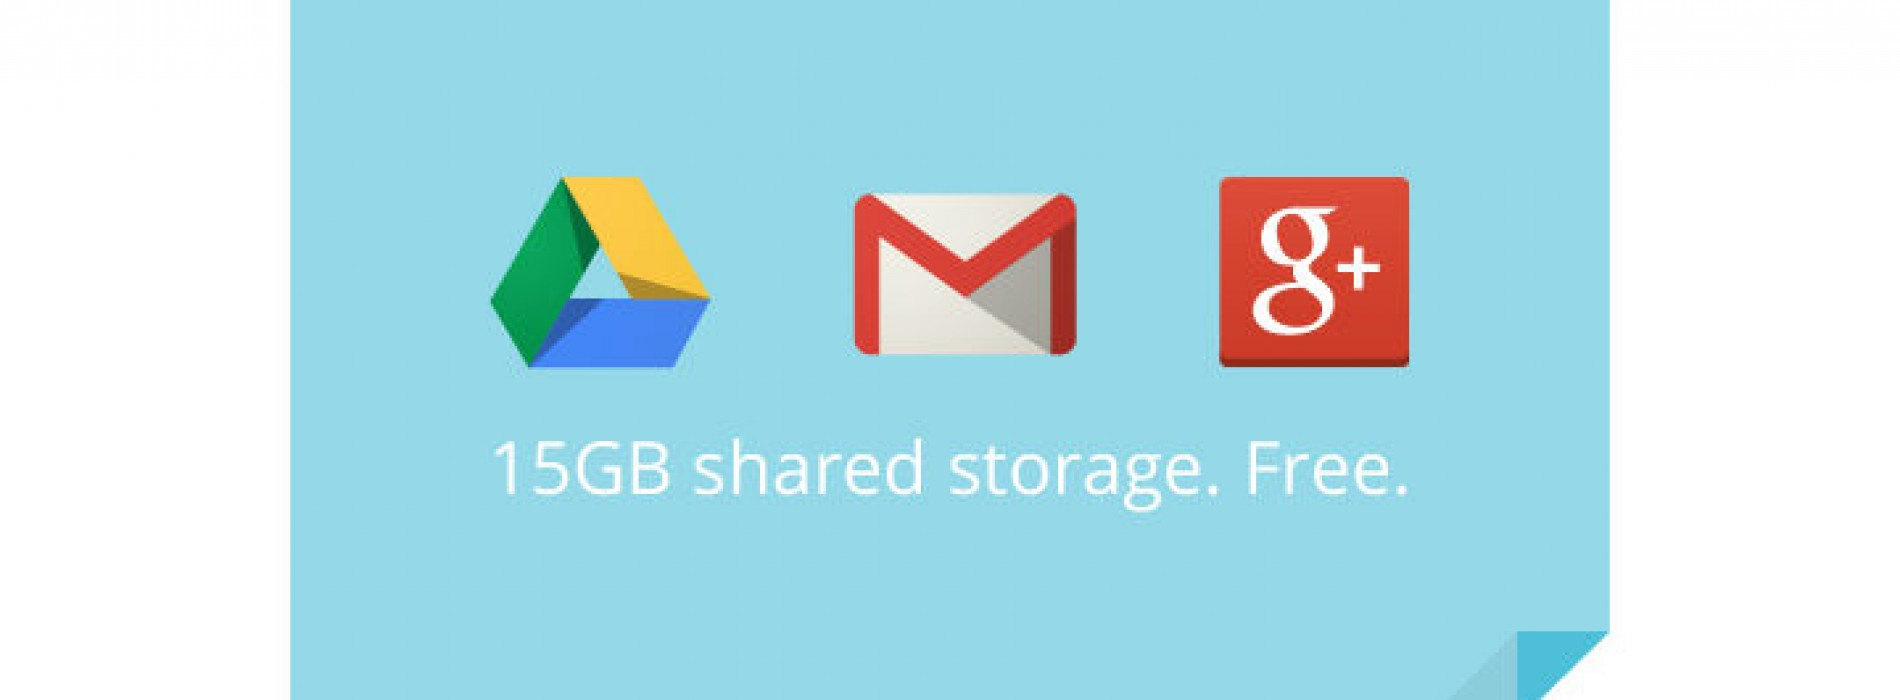 Google unifies Gmail and Drive storage with 15GB